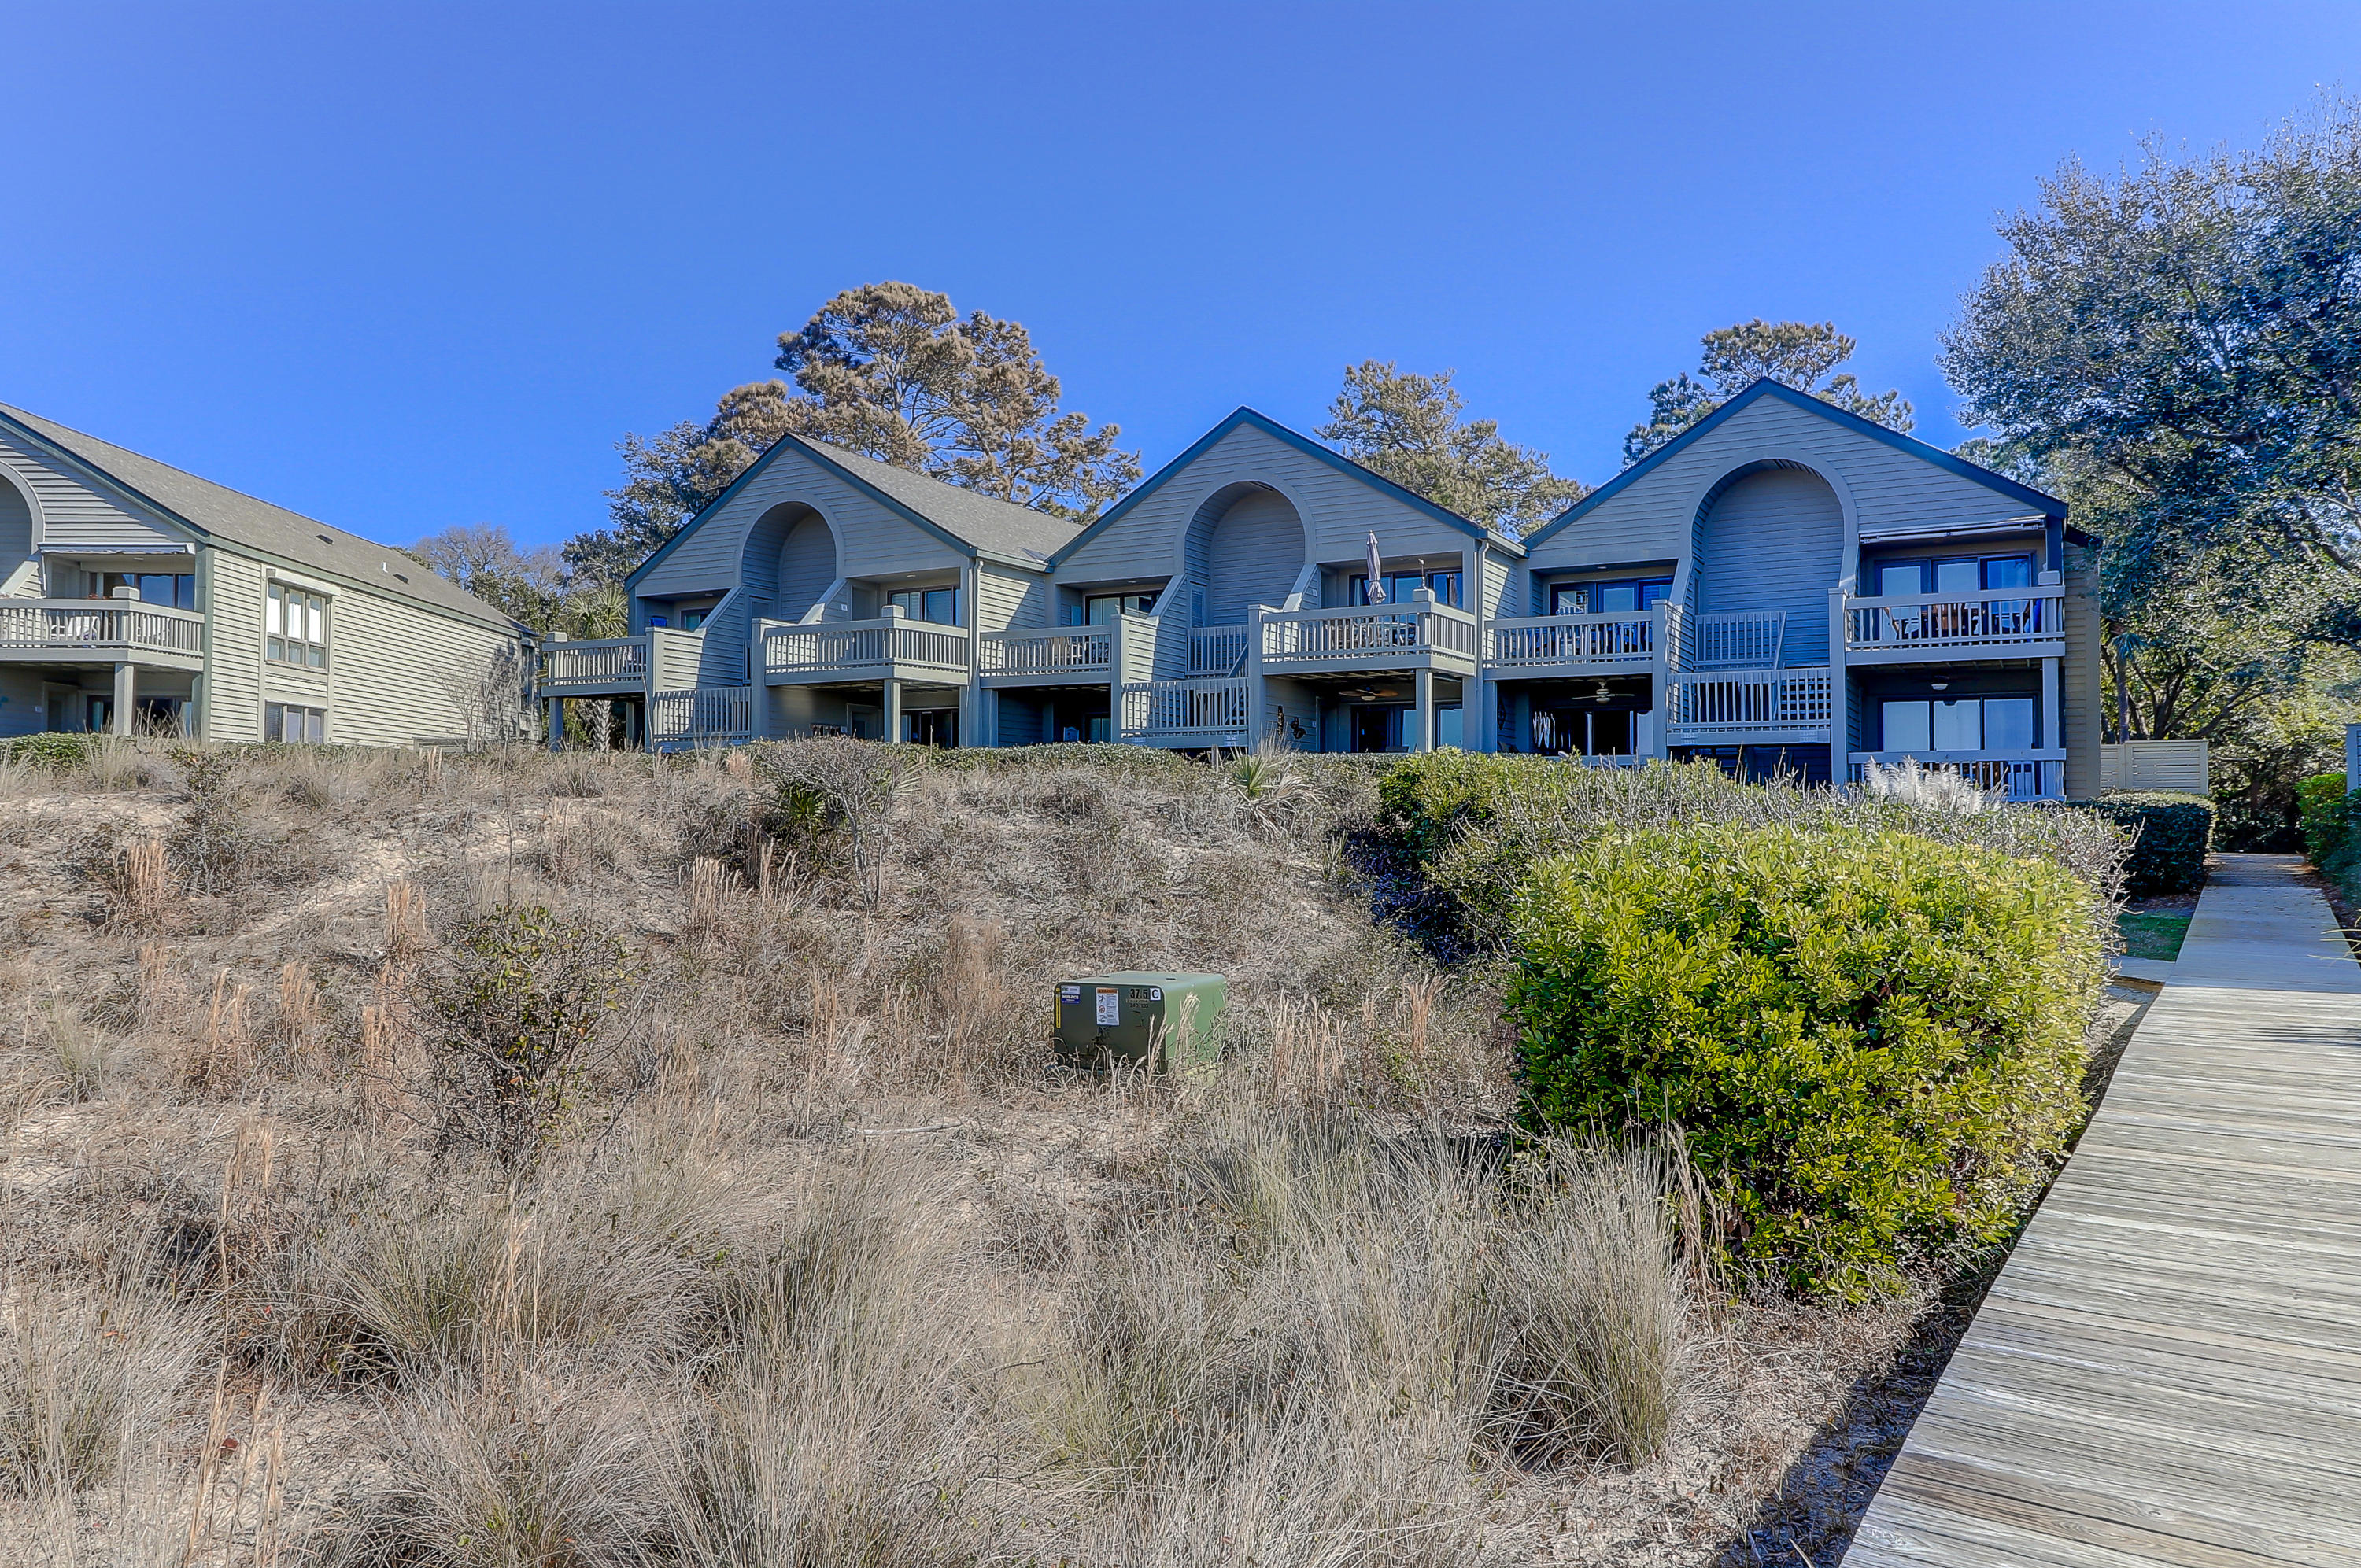 1355 Pelican Watch Villas Seabrook Island $561,000.00